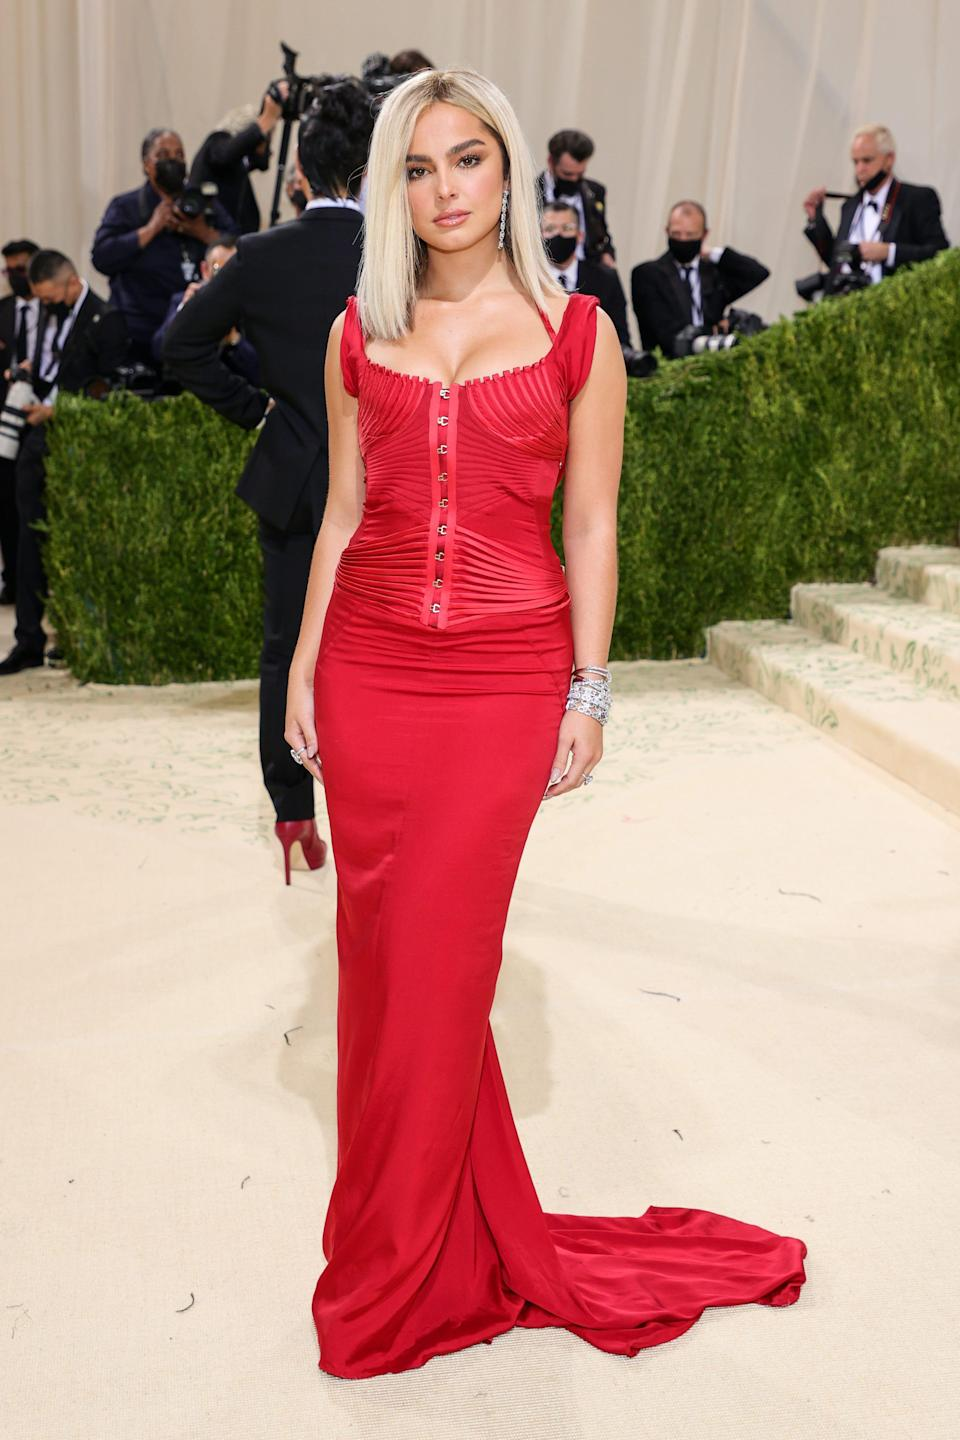 Addison Rae attends the 2021 Met Gala.